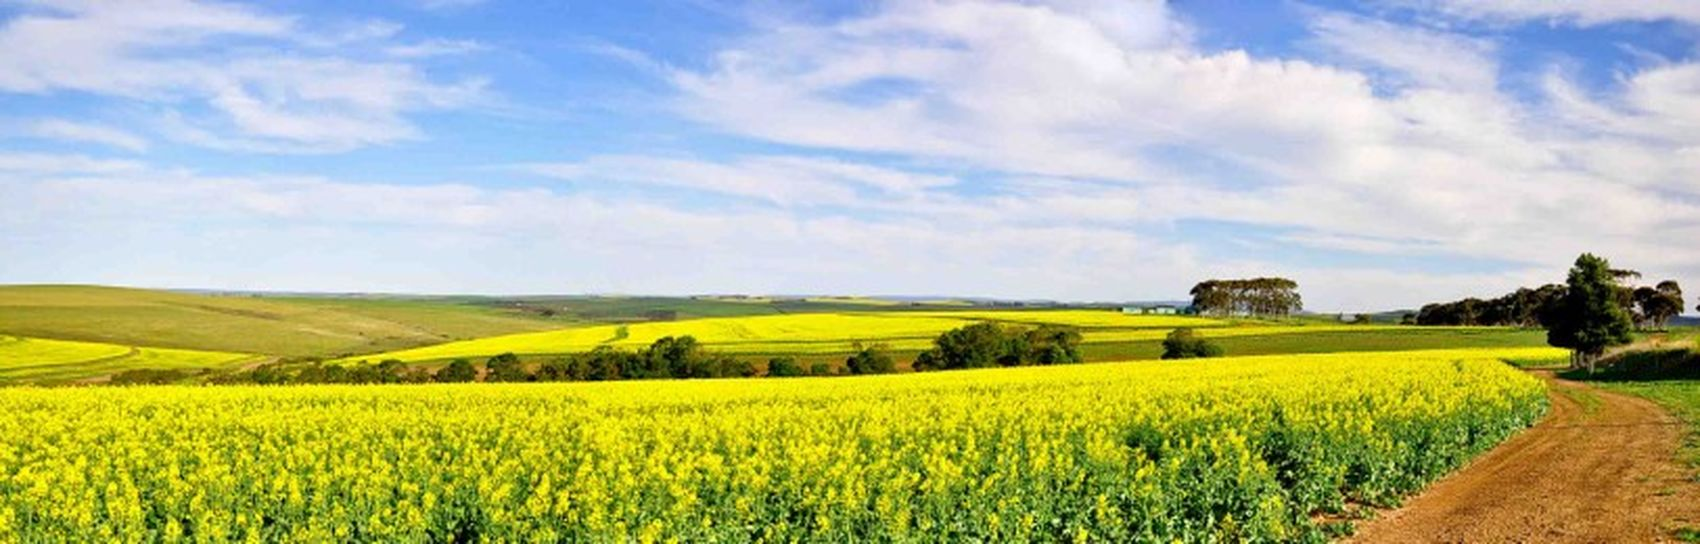 Canola fields, Western Cape. Photography Scenicview Nature Landscape